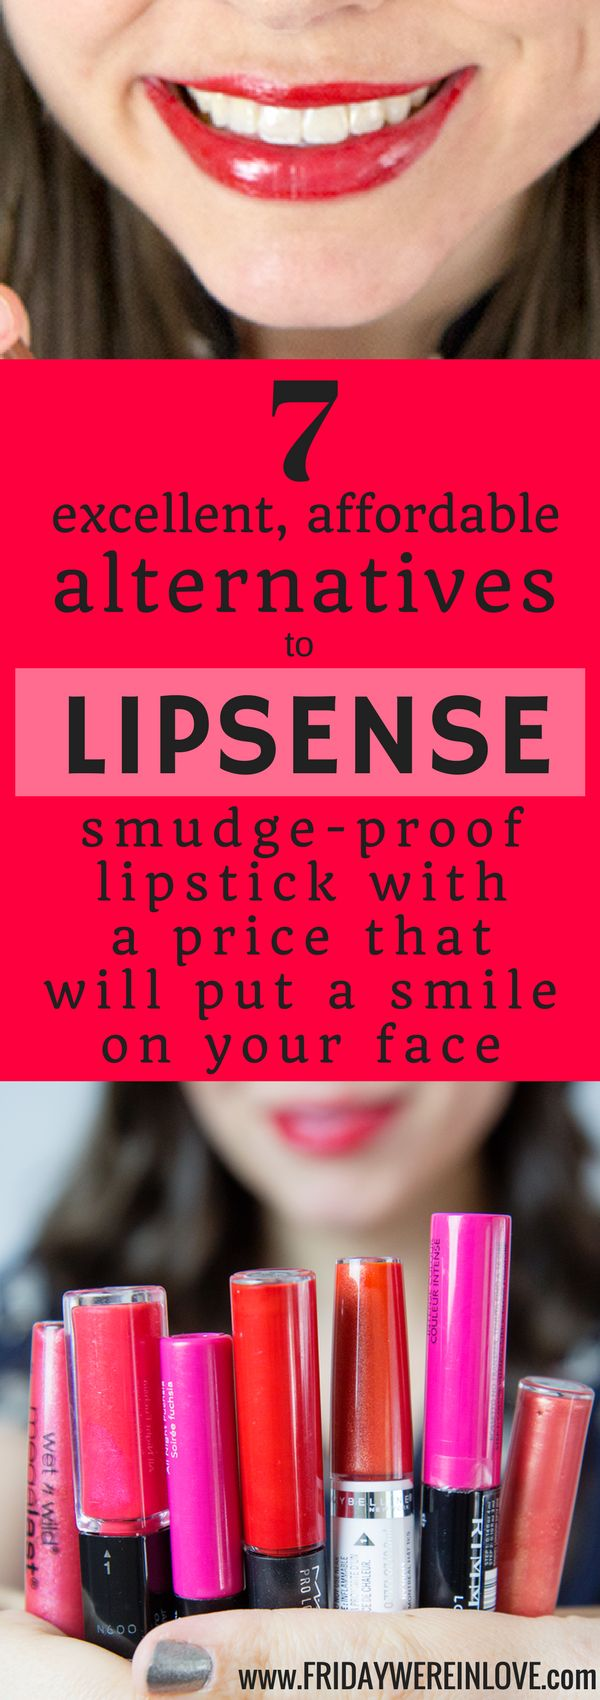 7 excellent, affordable Lipsense alternatives that are smudge-proof, kiss-proof lipsticks that won't break the bank! Videos/detailed shots of all products.